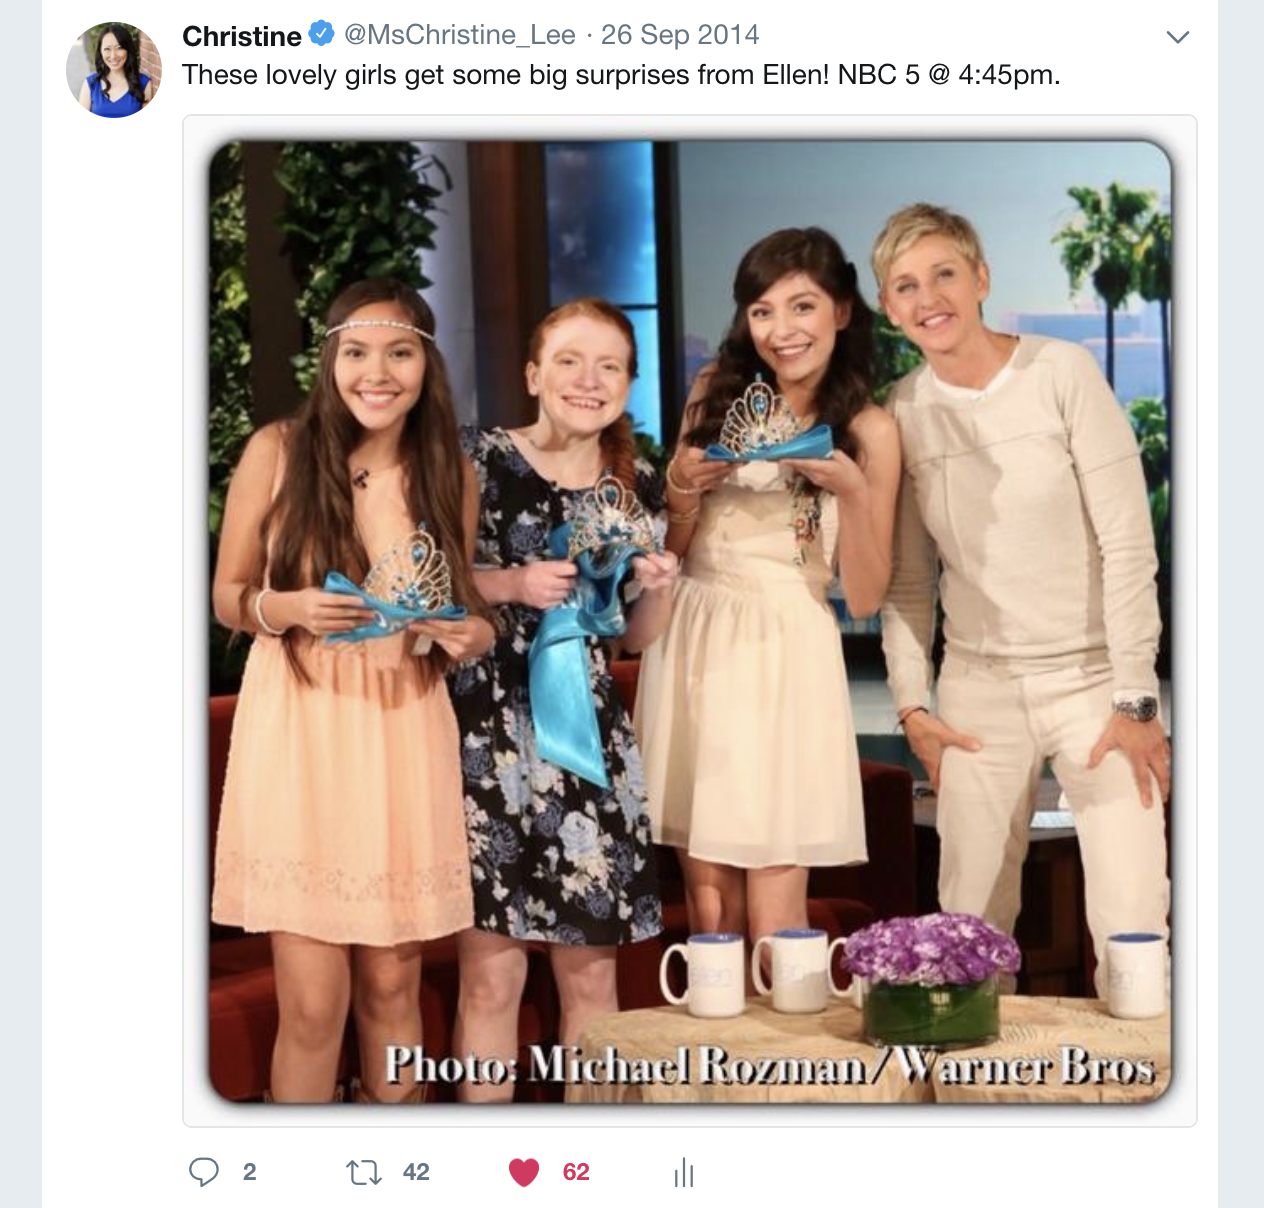 Christine Lee helped report on these teens that caught Ellen's attention